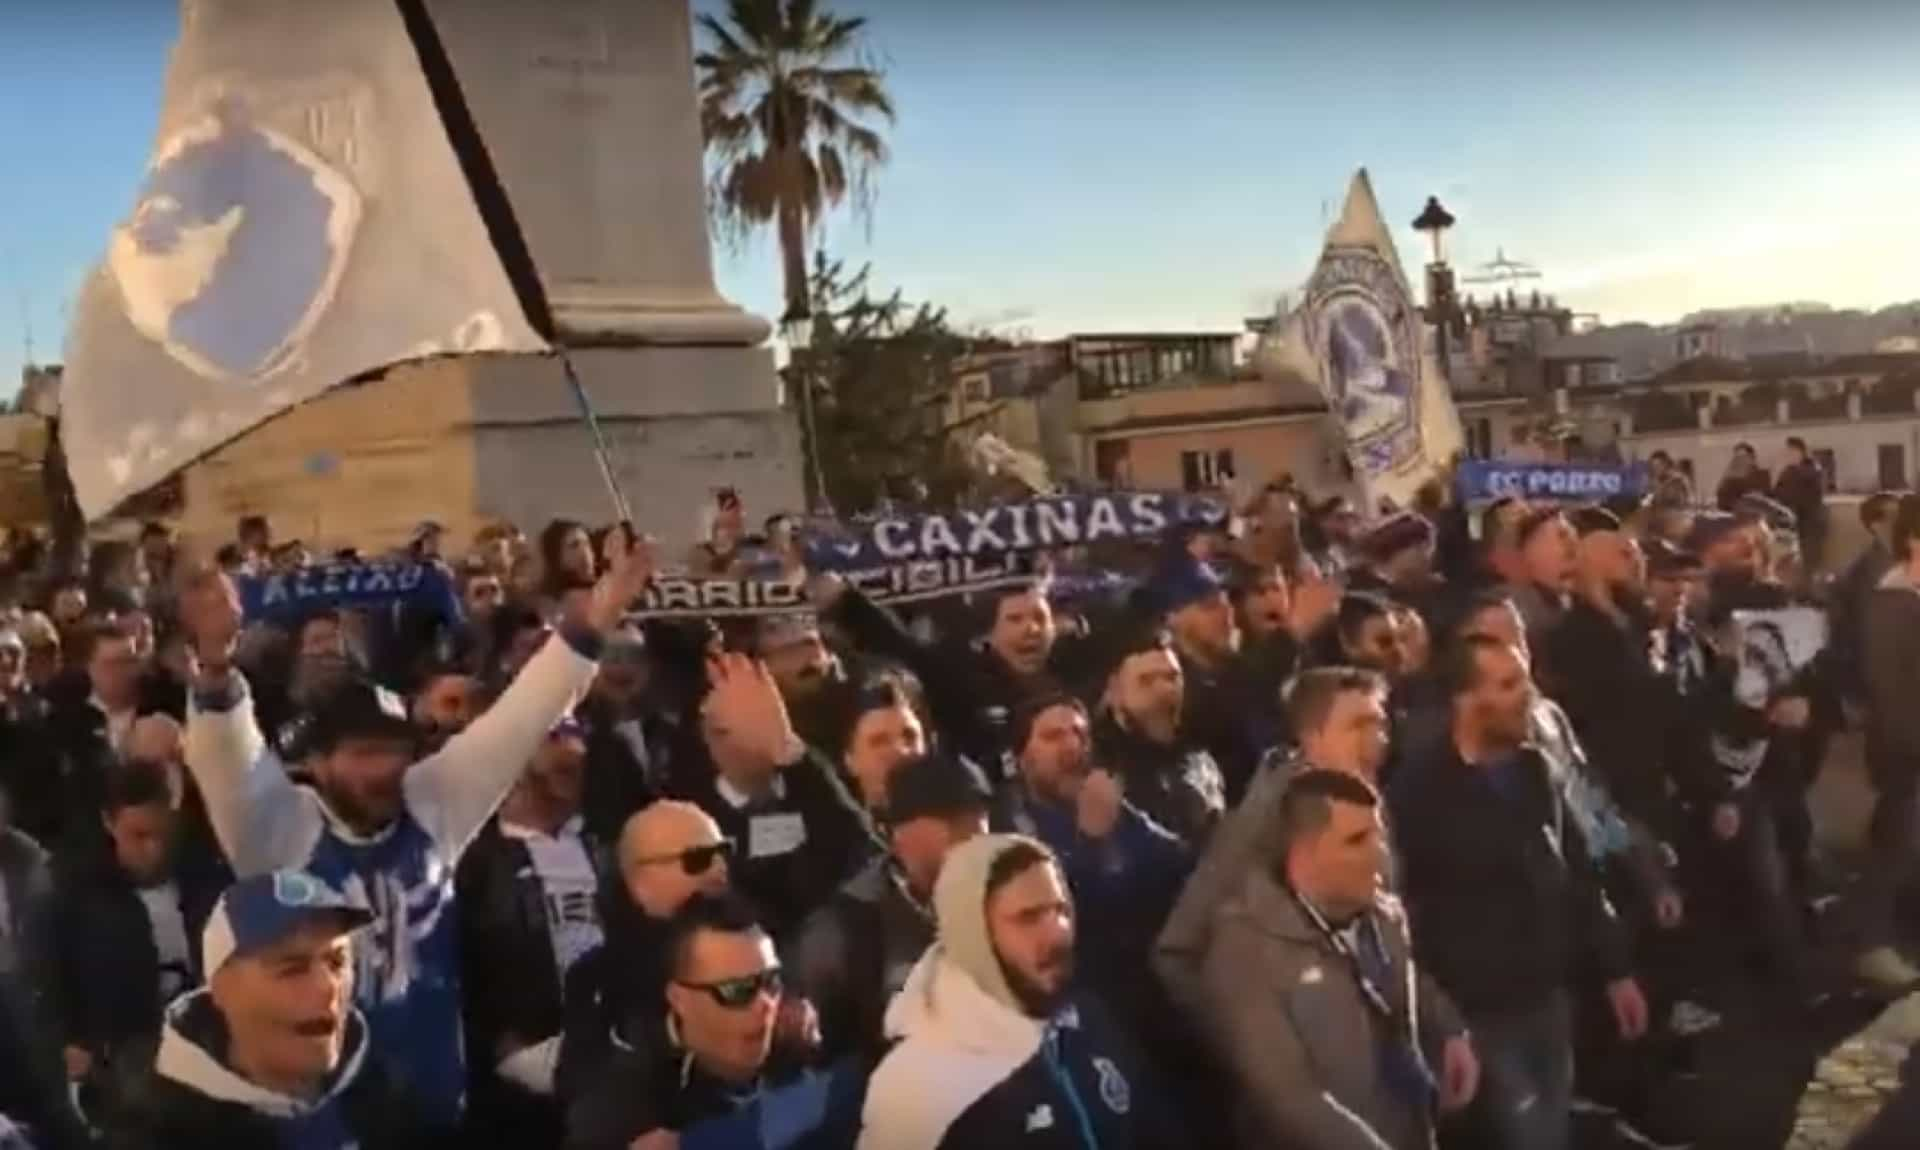 Adeptos do FC Porto 'invadiram' Roma horas antes do encontro da Champions